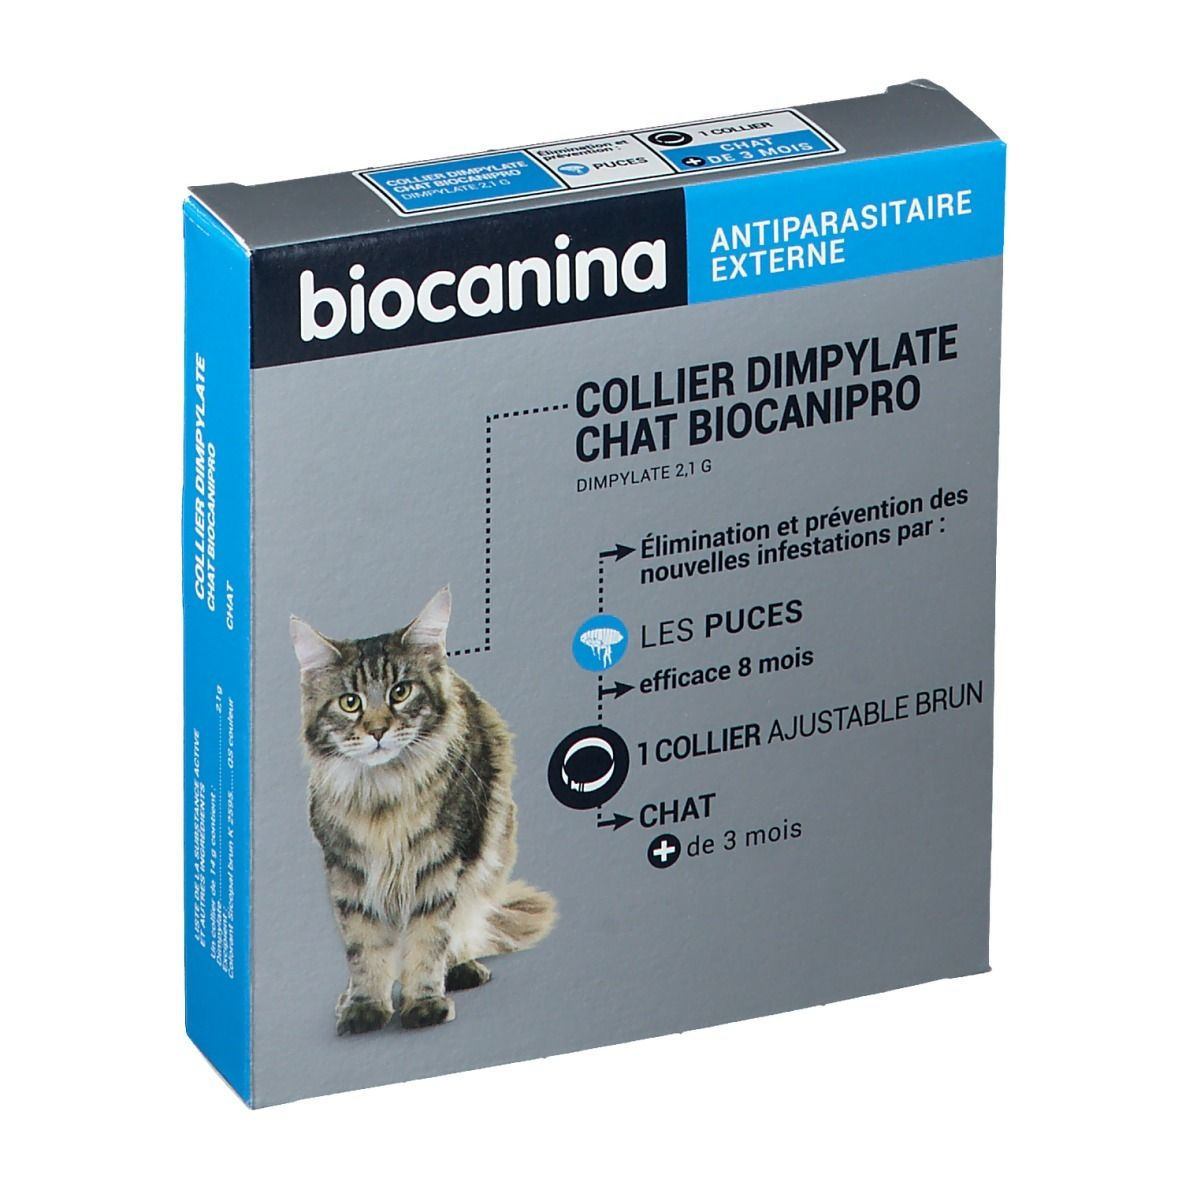 Image of Biocanina Collier insecticide Biocanipro pour chat